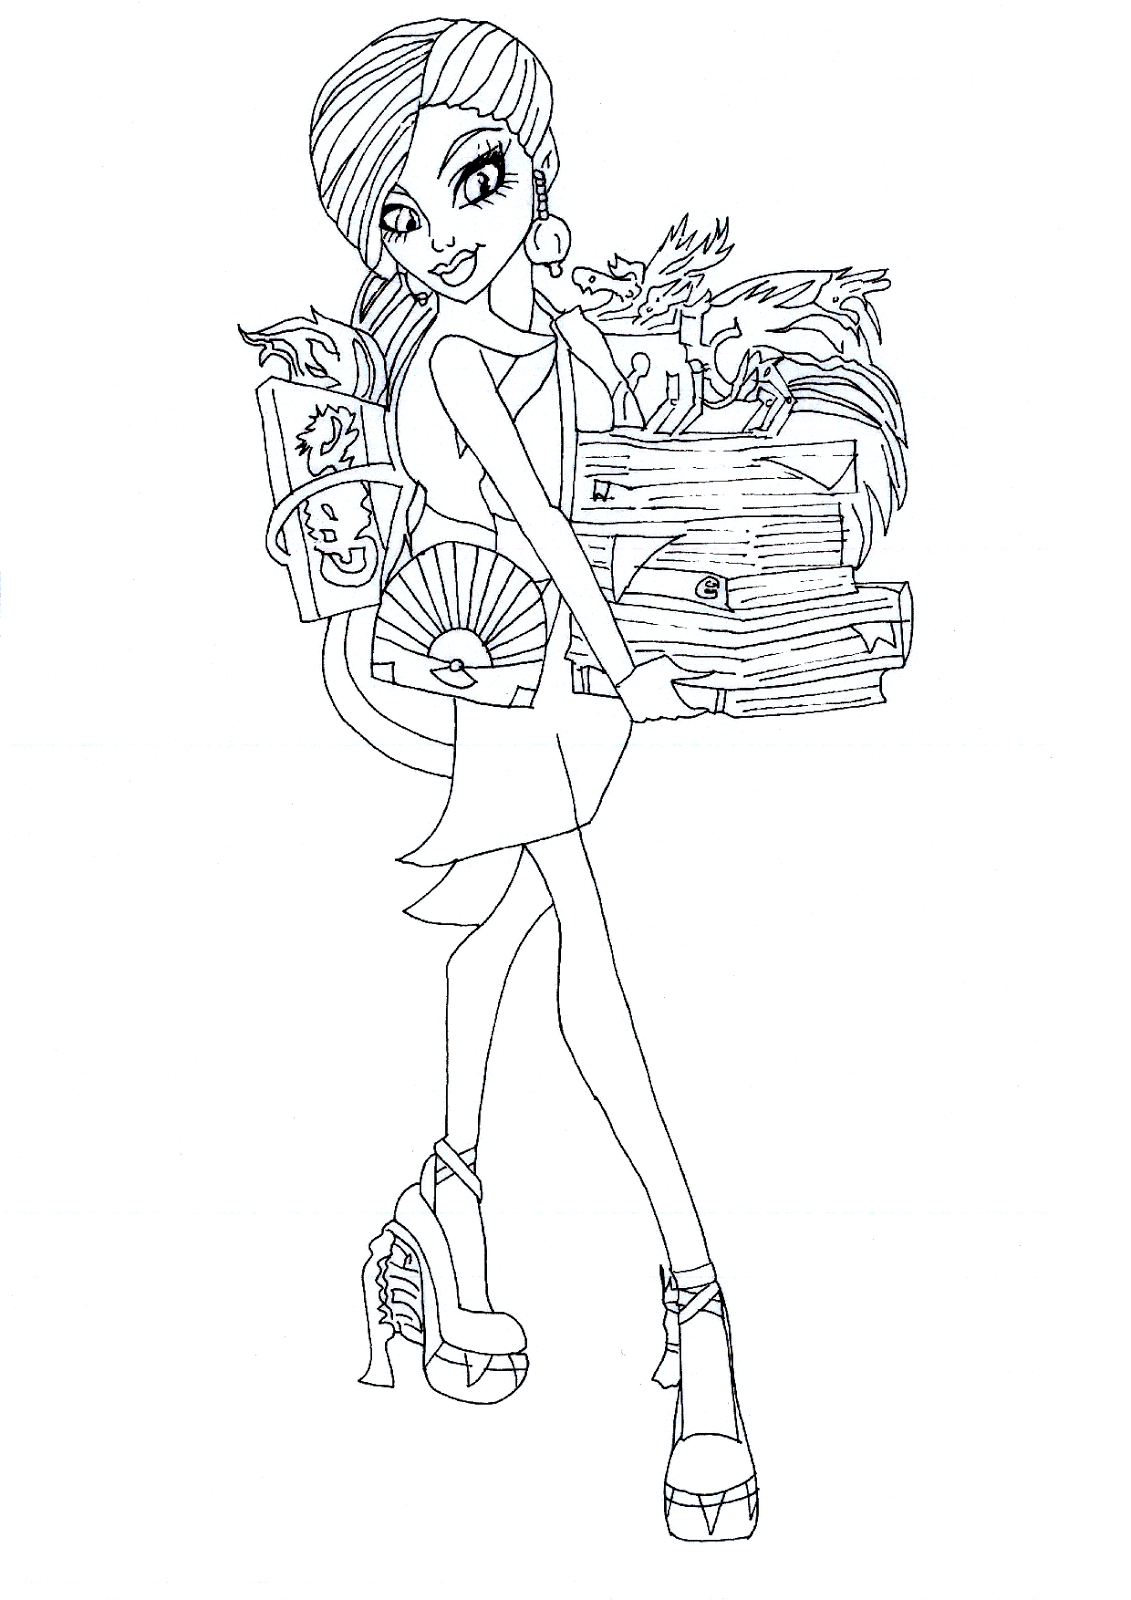 river monster high coloring pages coloring pages - Scary Monster High Coloring Pages